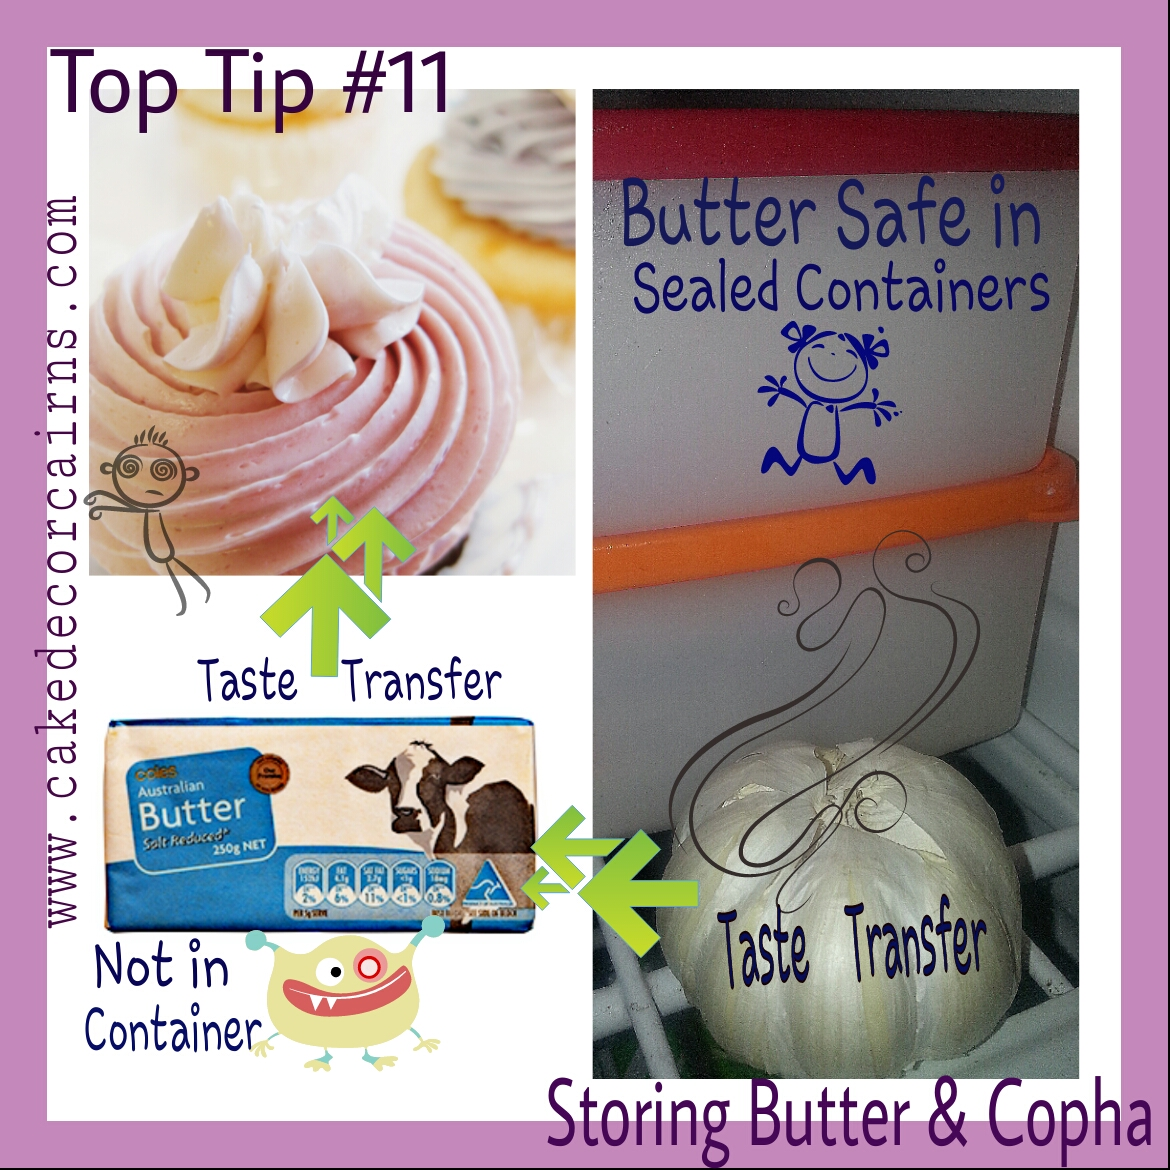 Store butter in containers to prevent odour and taste transfer.